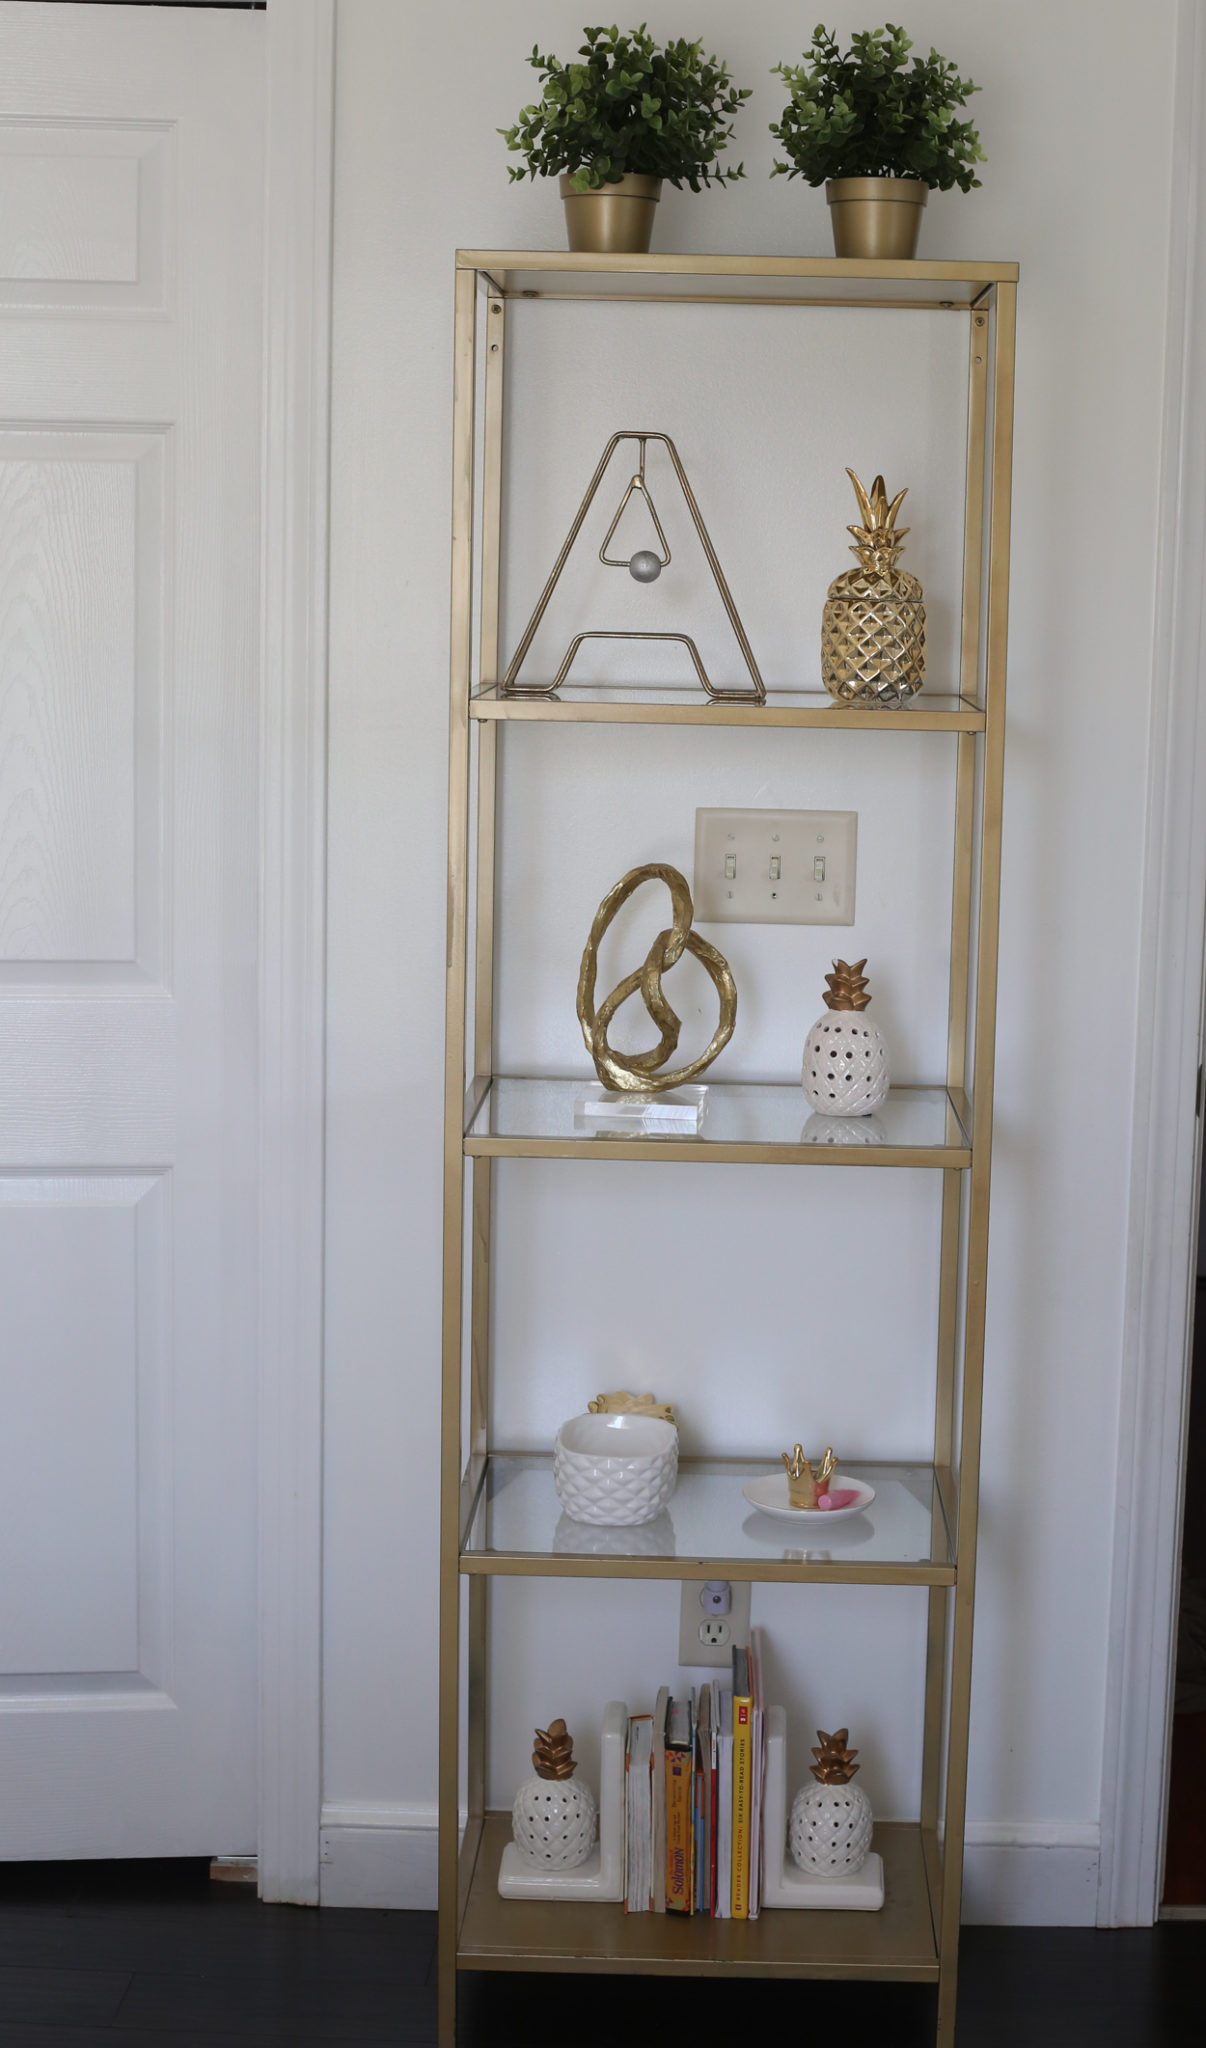 Golden book shelf loaded with golden decor accents.